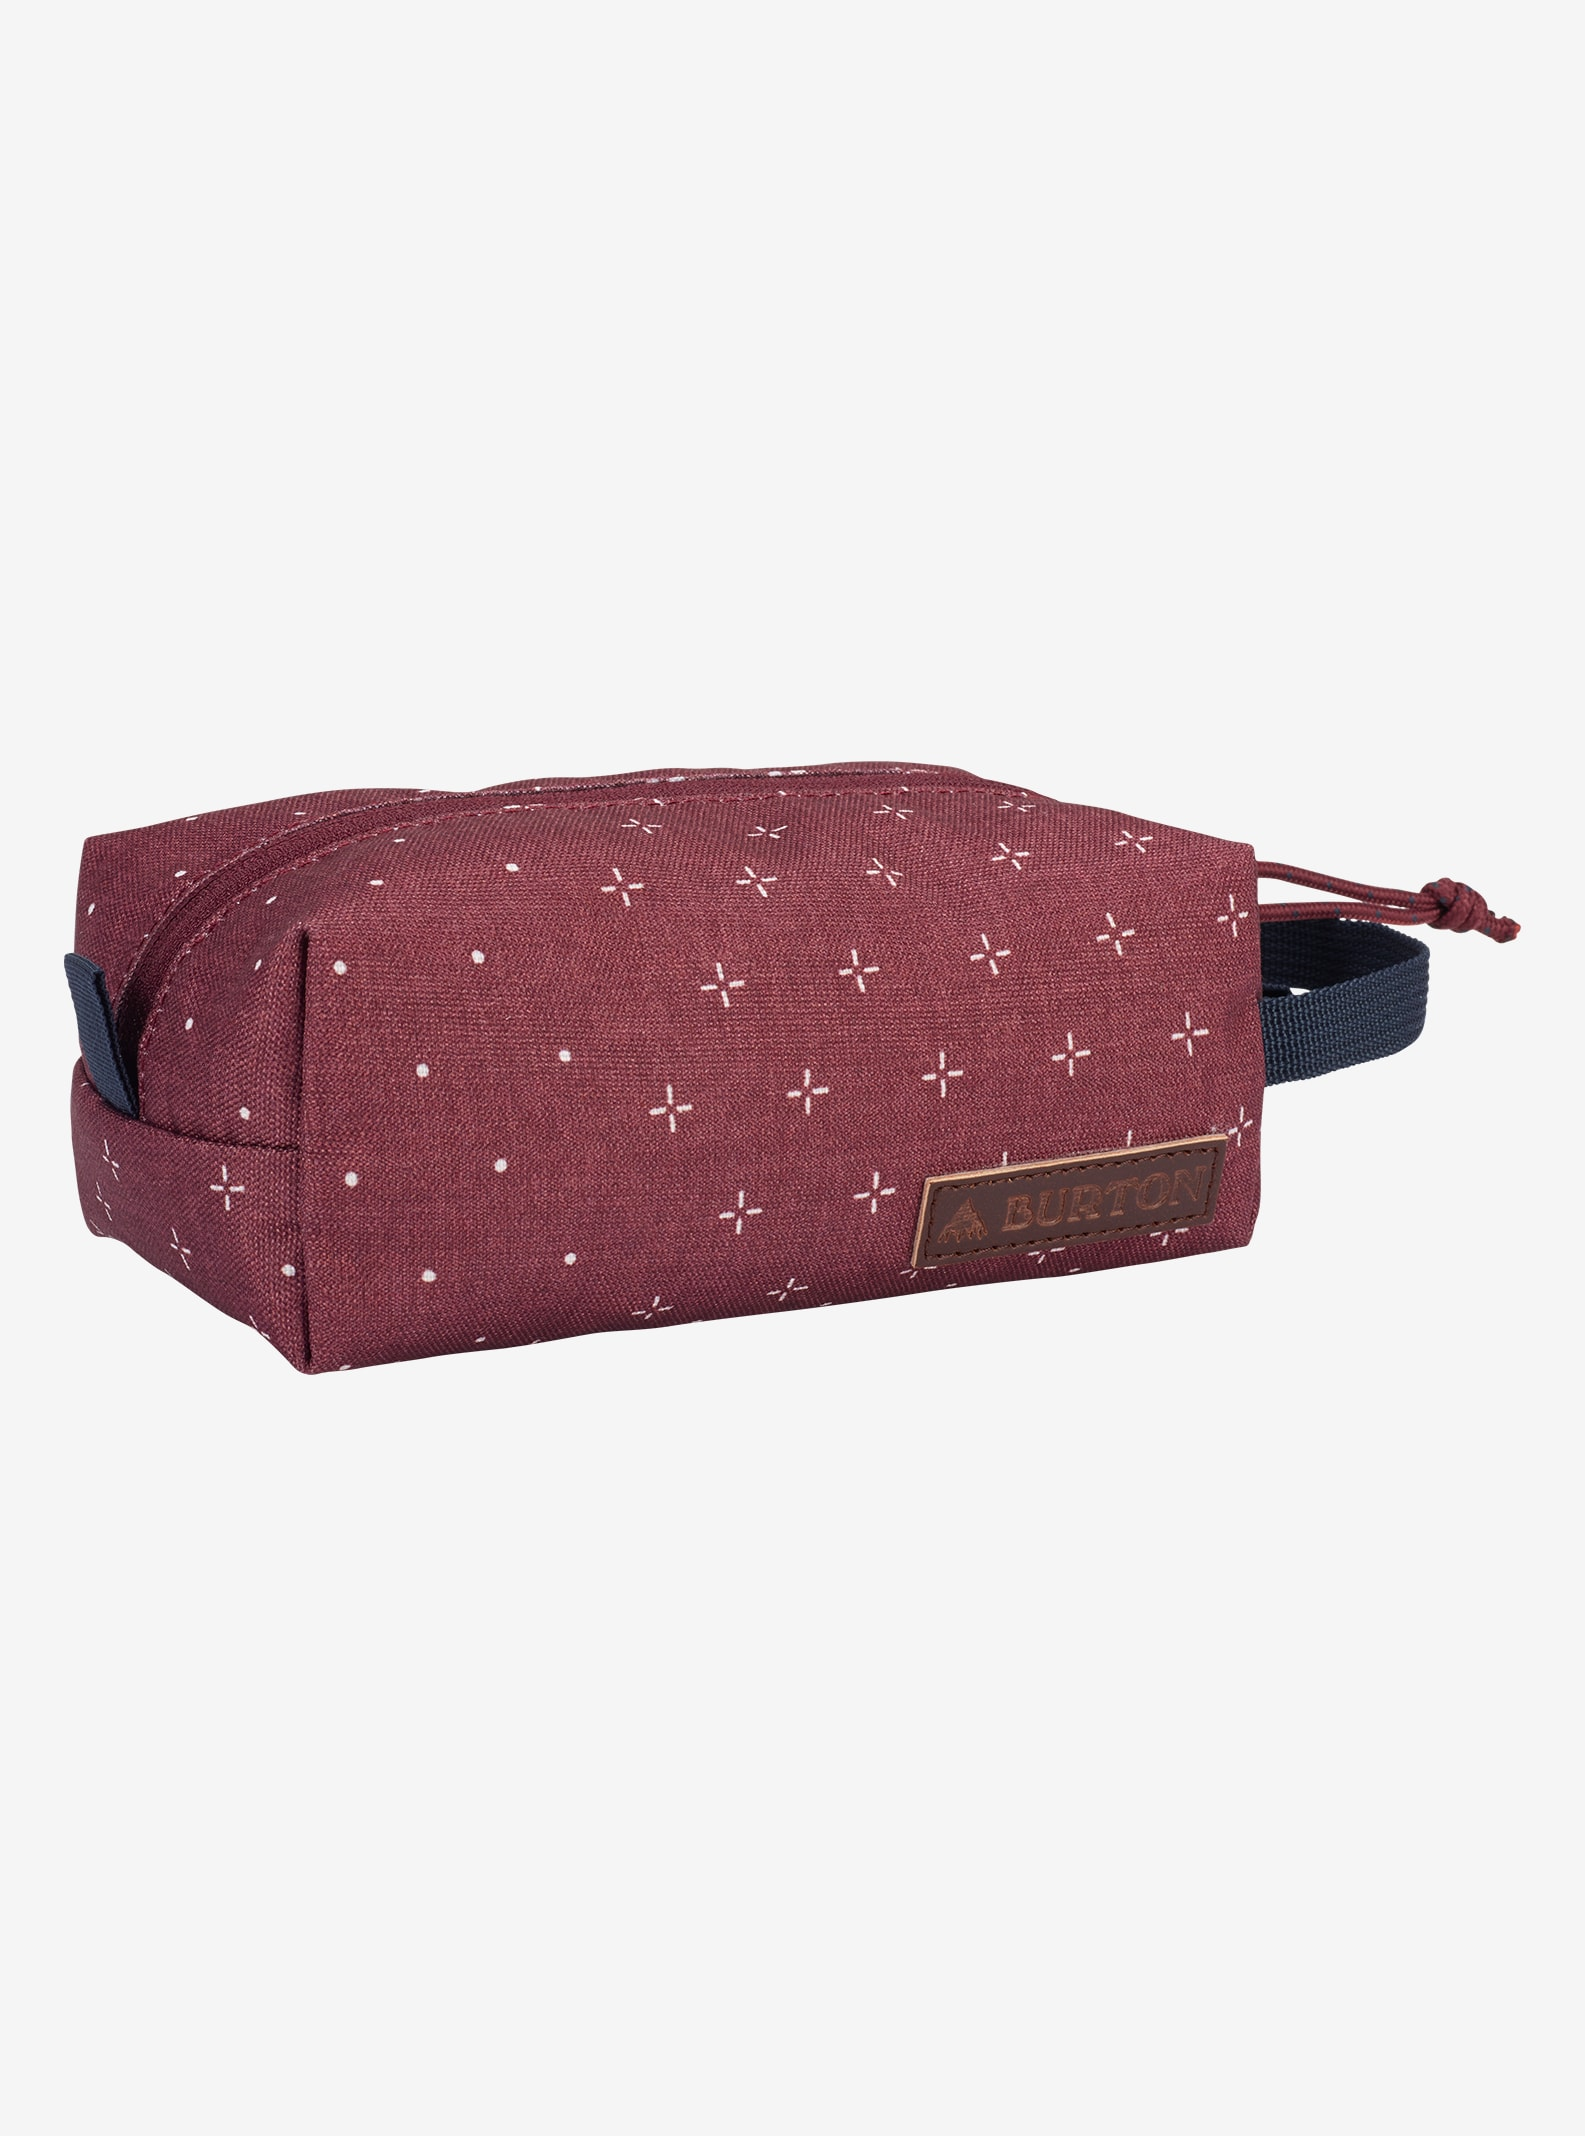 Burton Accessory Case shown in Mandana Print